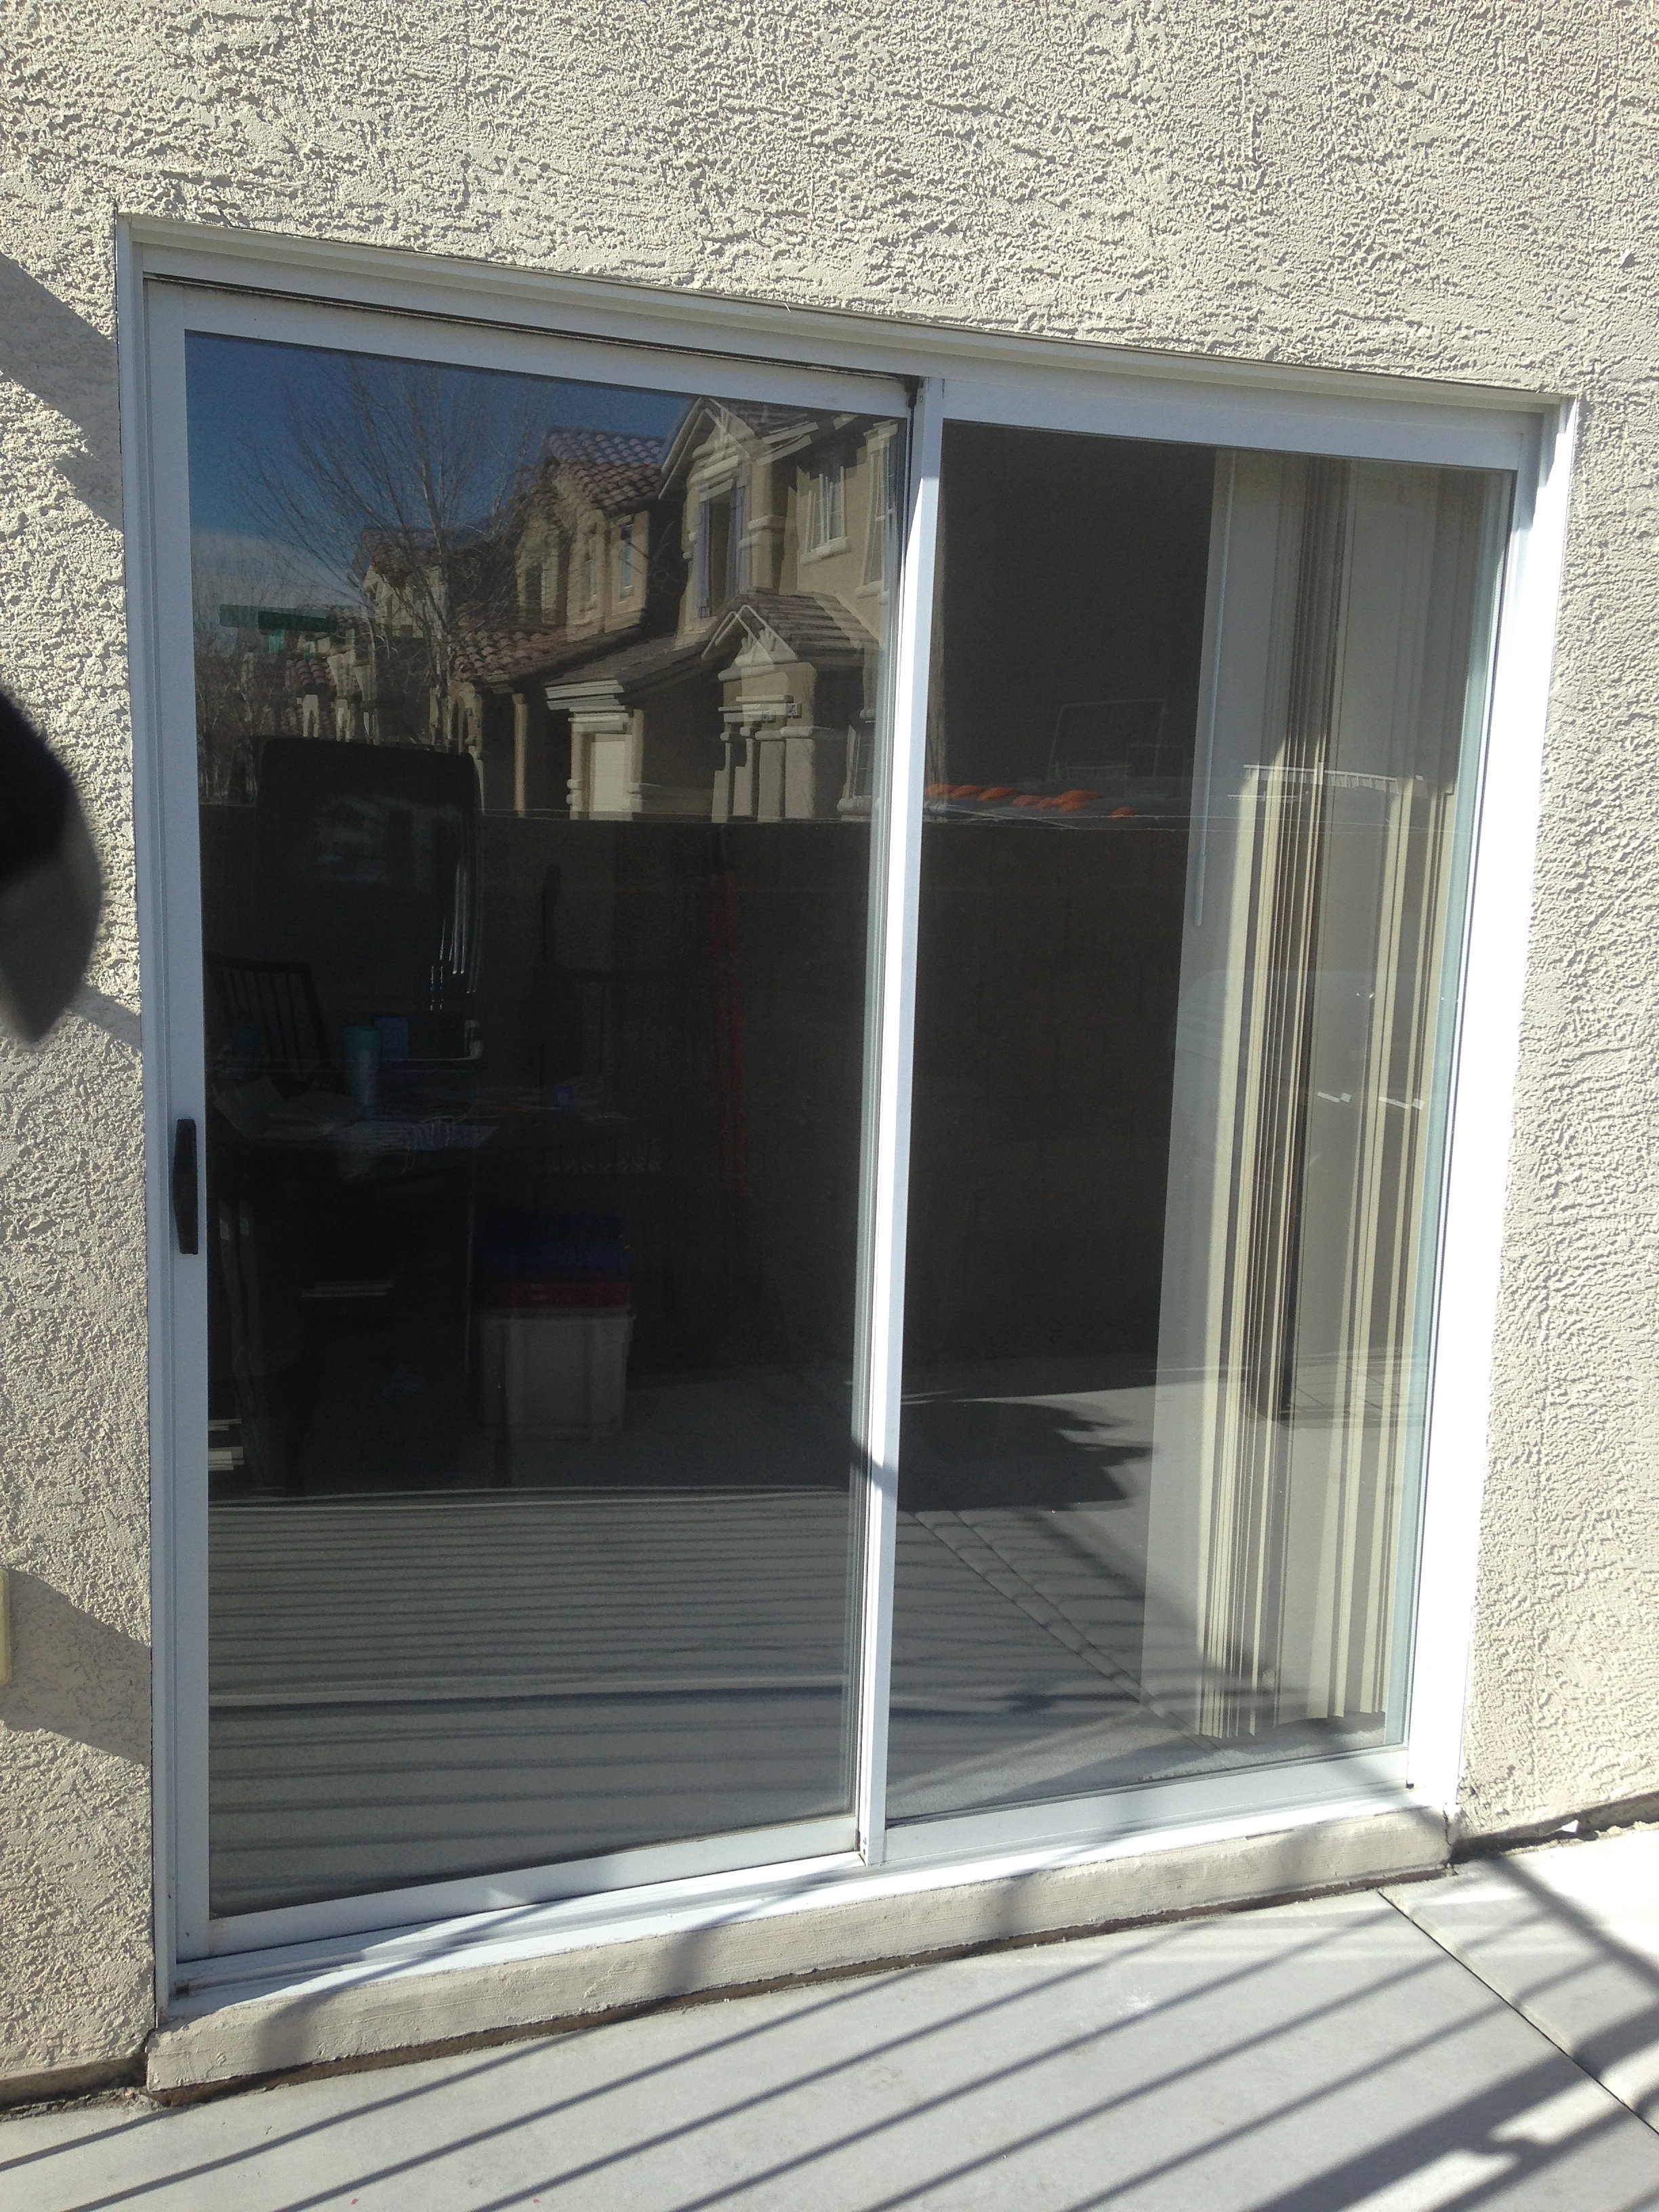 Las vegas patio door glass replacement commercial window for Patio window replacement